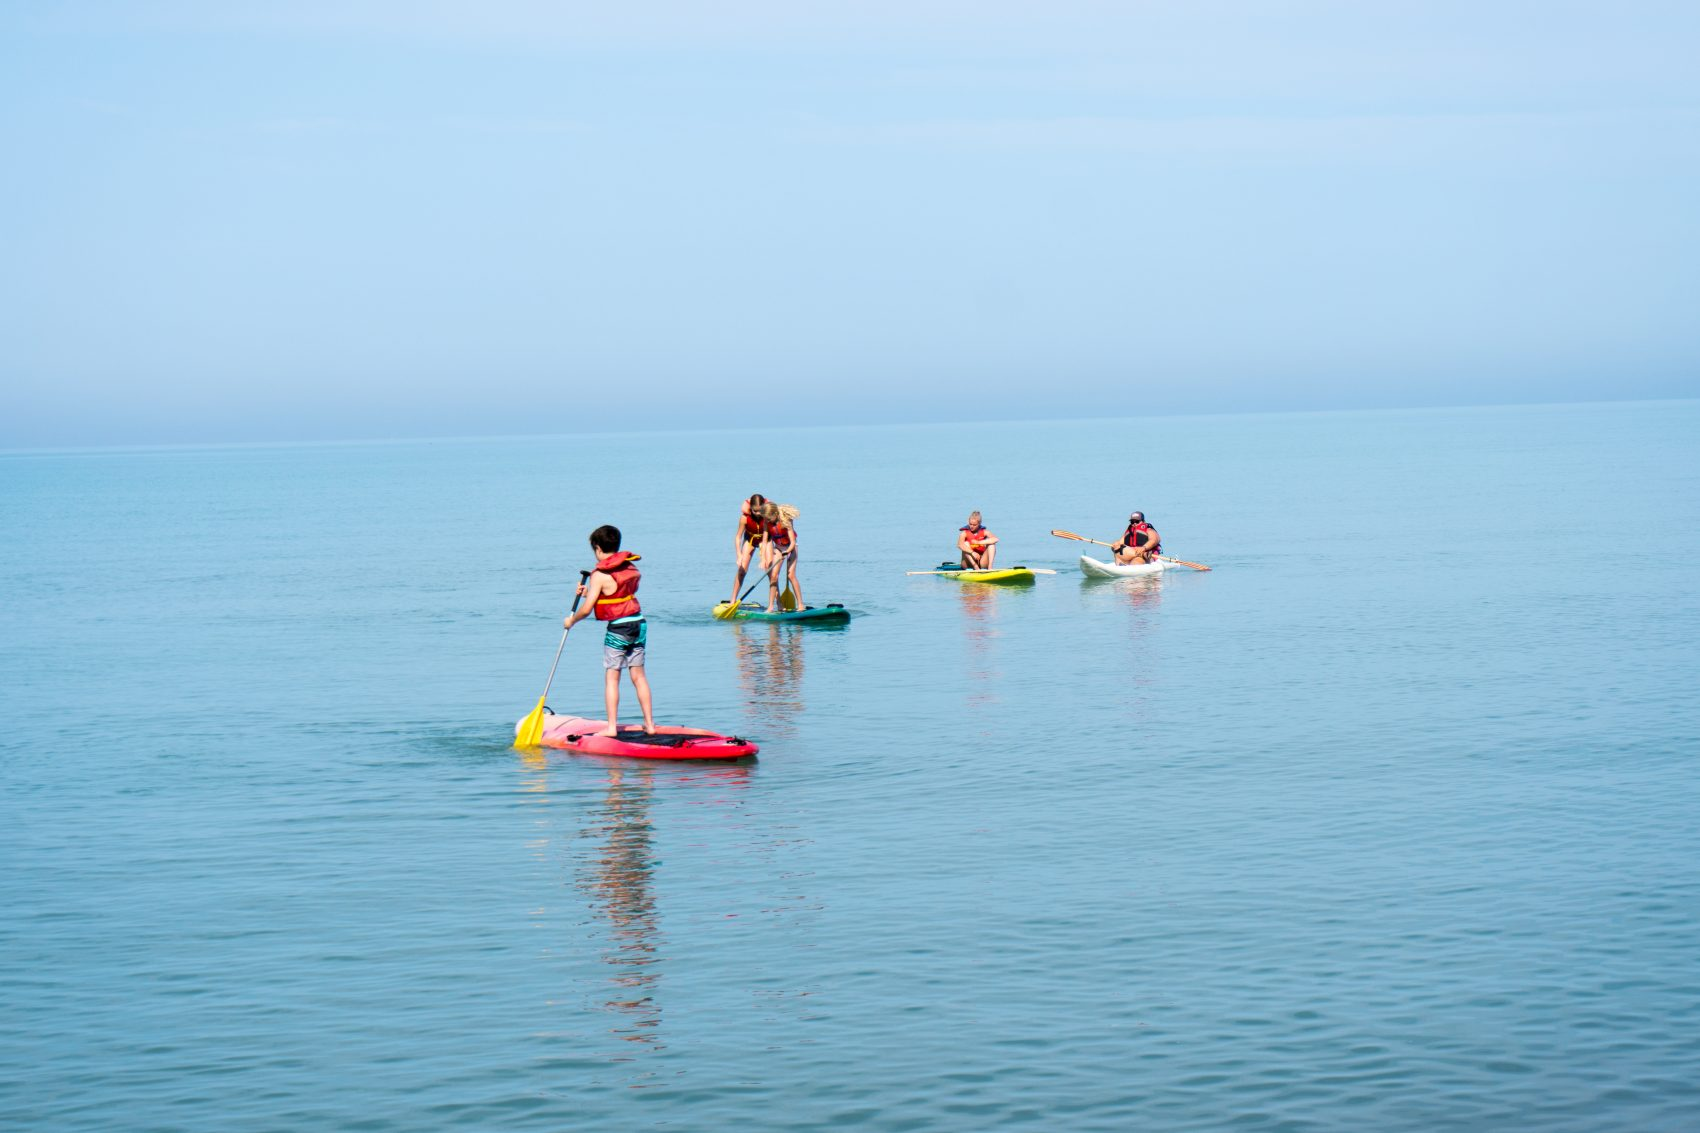 Four campers are seen standing on paddle boards on Lake Huron.